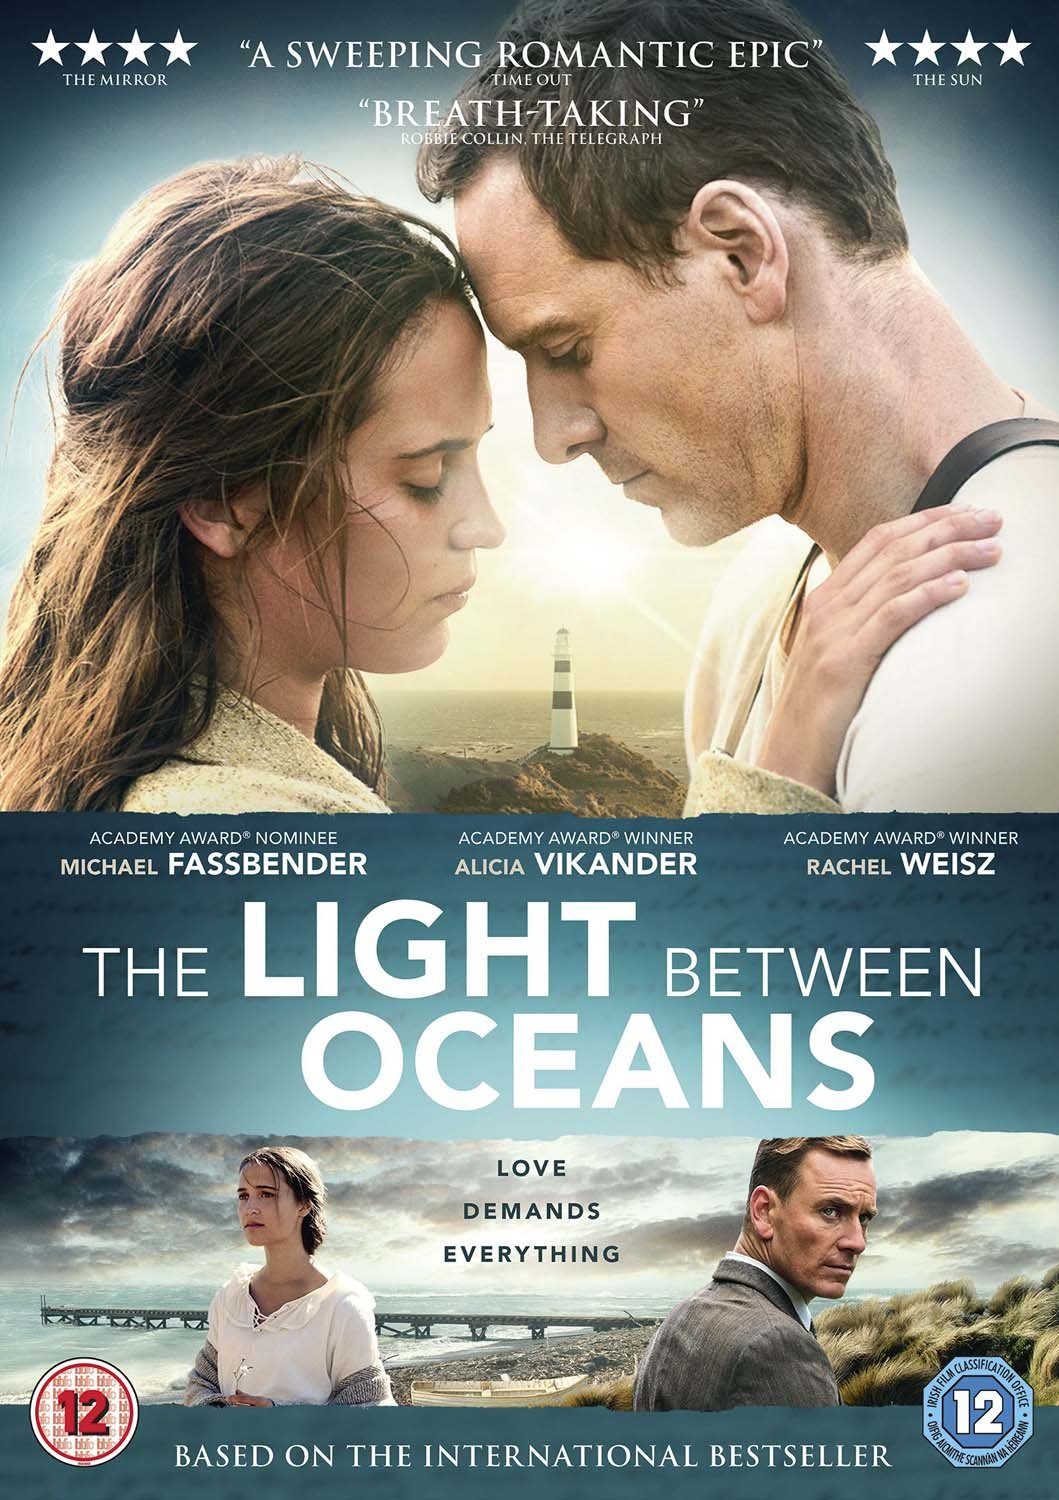 The Light Between Oceans [DVD]: Amazon.co.uk: Michael Fassbender ...